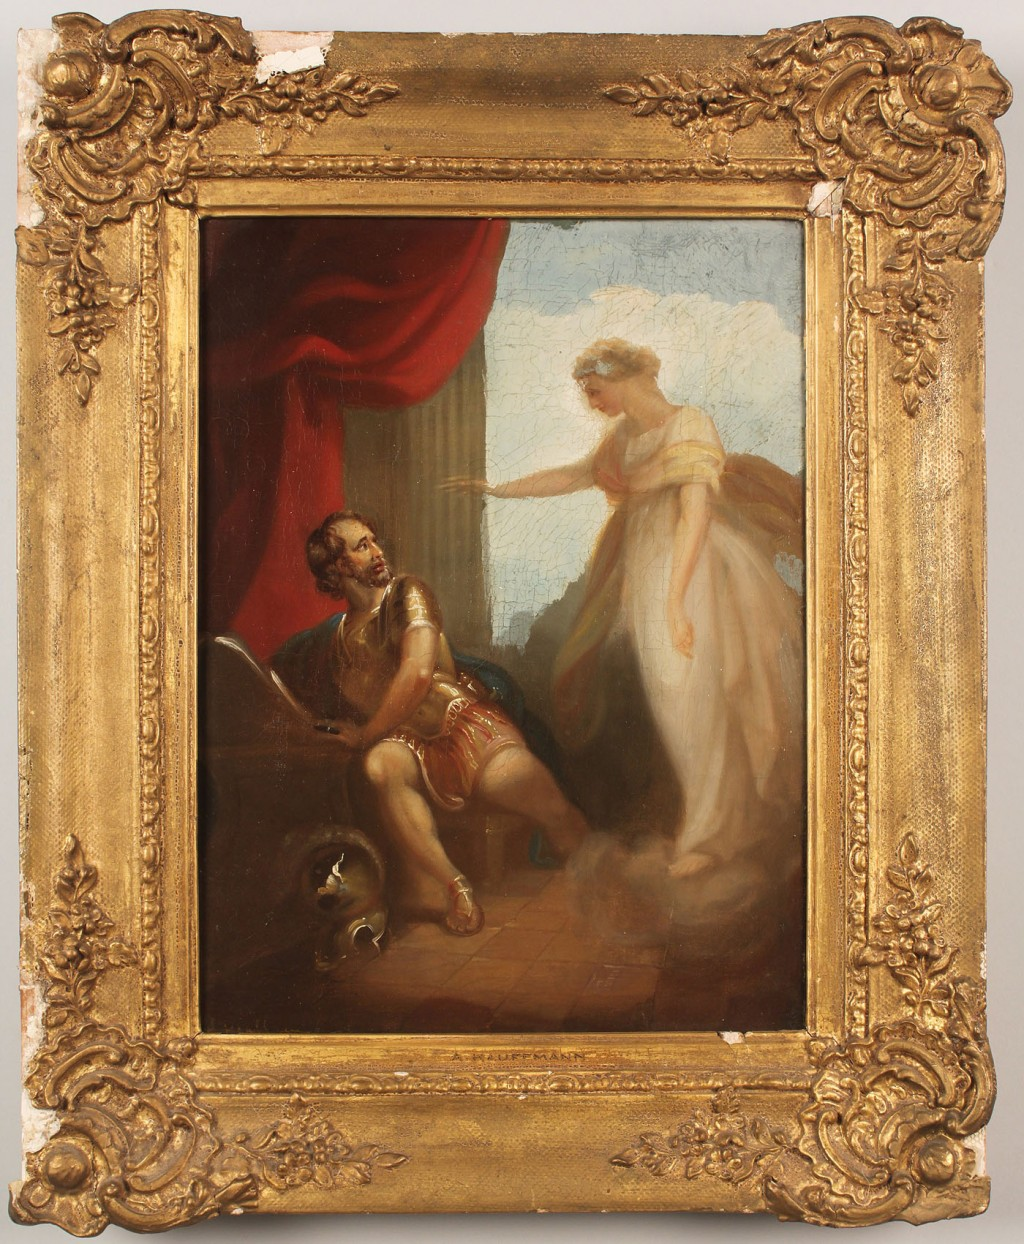 Lot 487: Manner of Angelica Kauffmann, Classical Painting